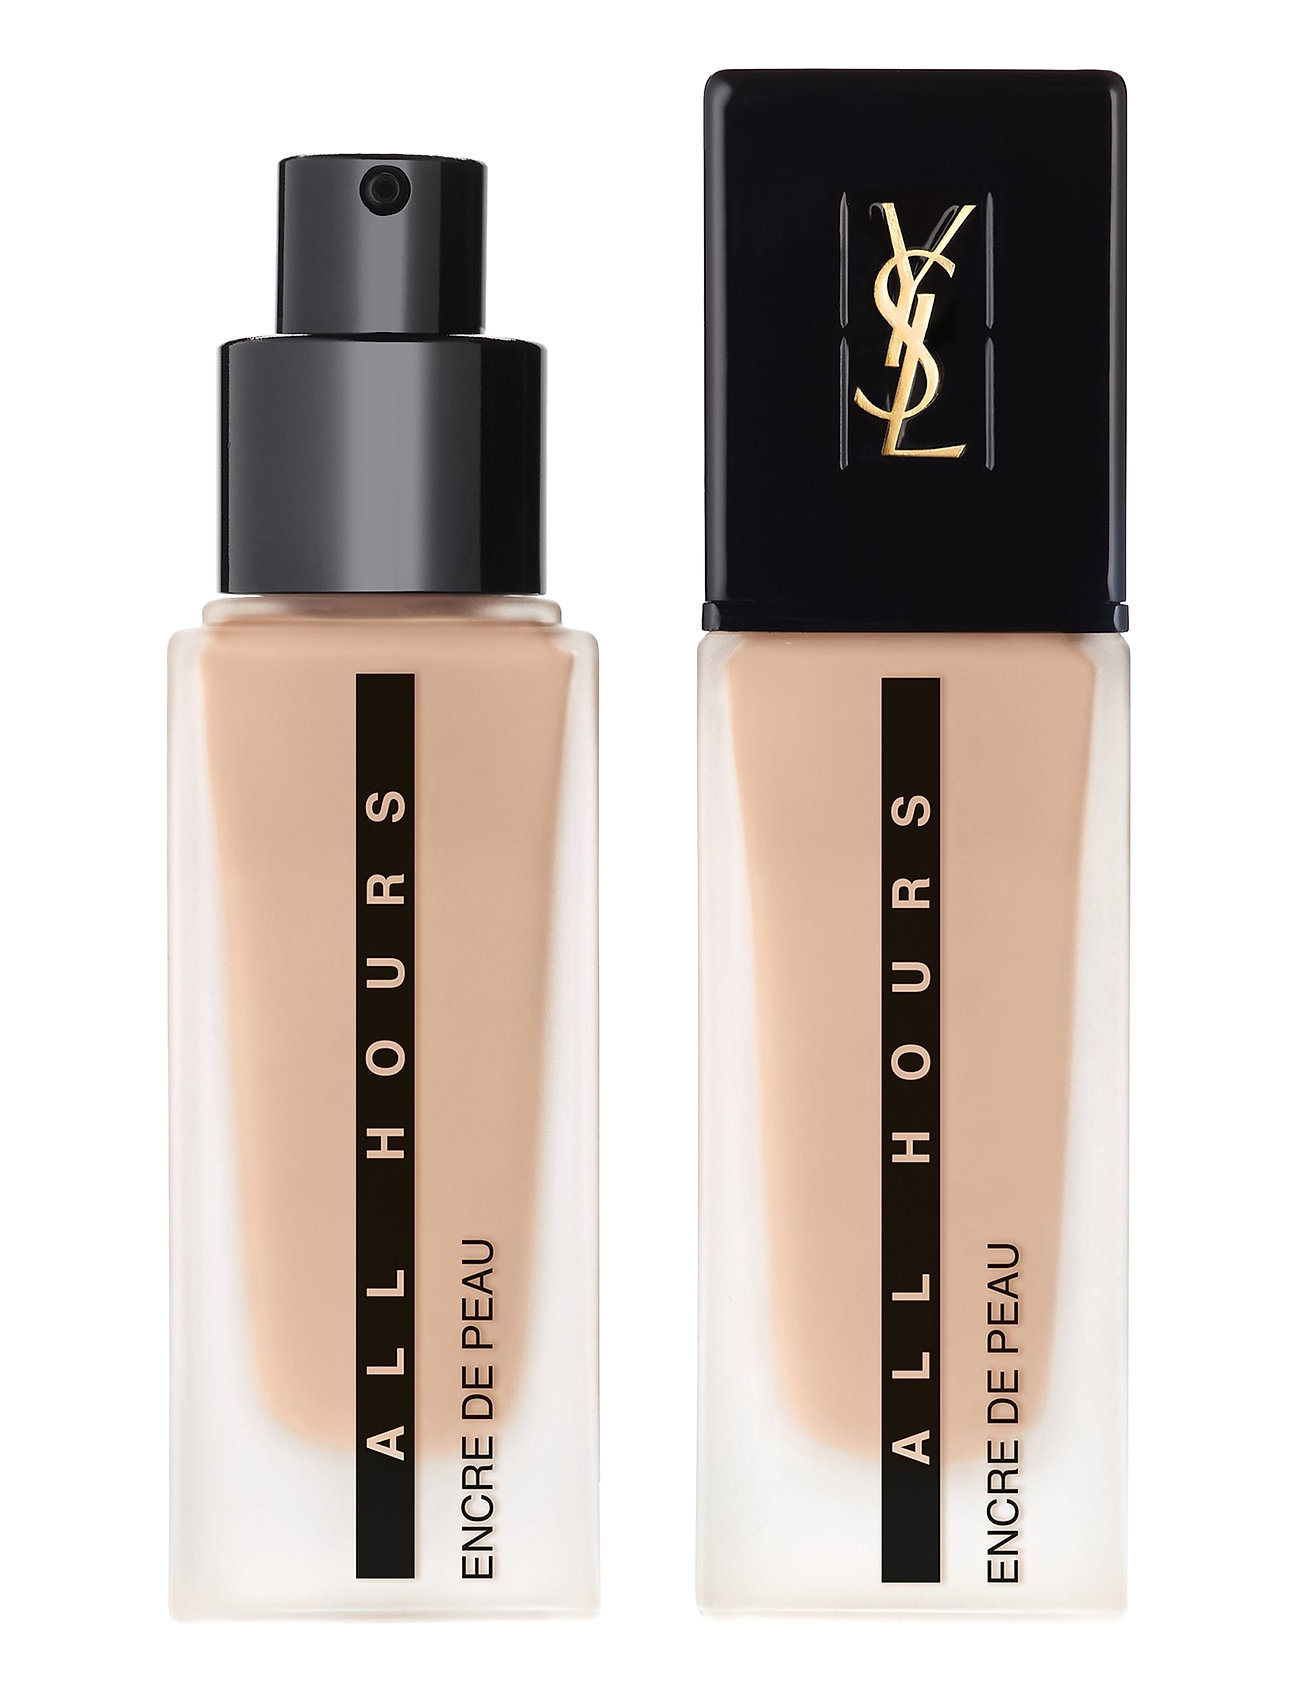 yves saint laurent Encre de peau all hours b40 25 ml på boozt.com dk